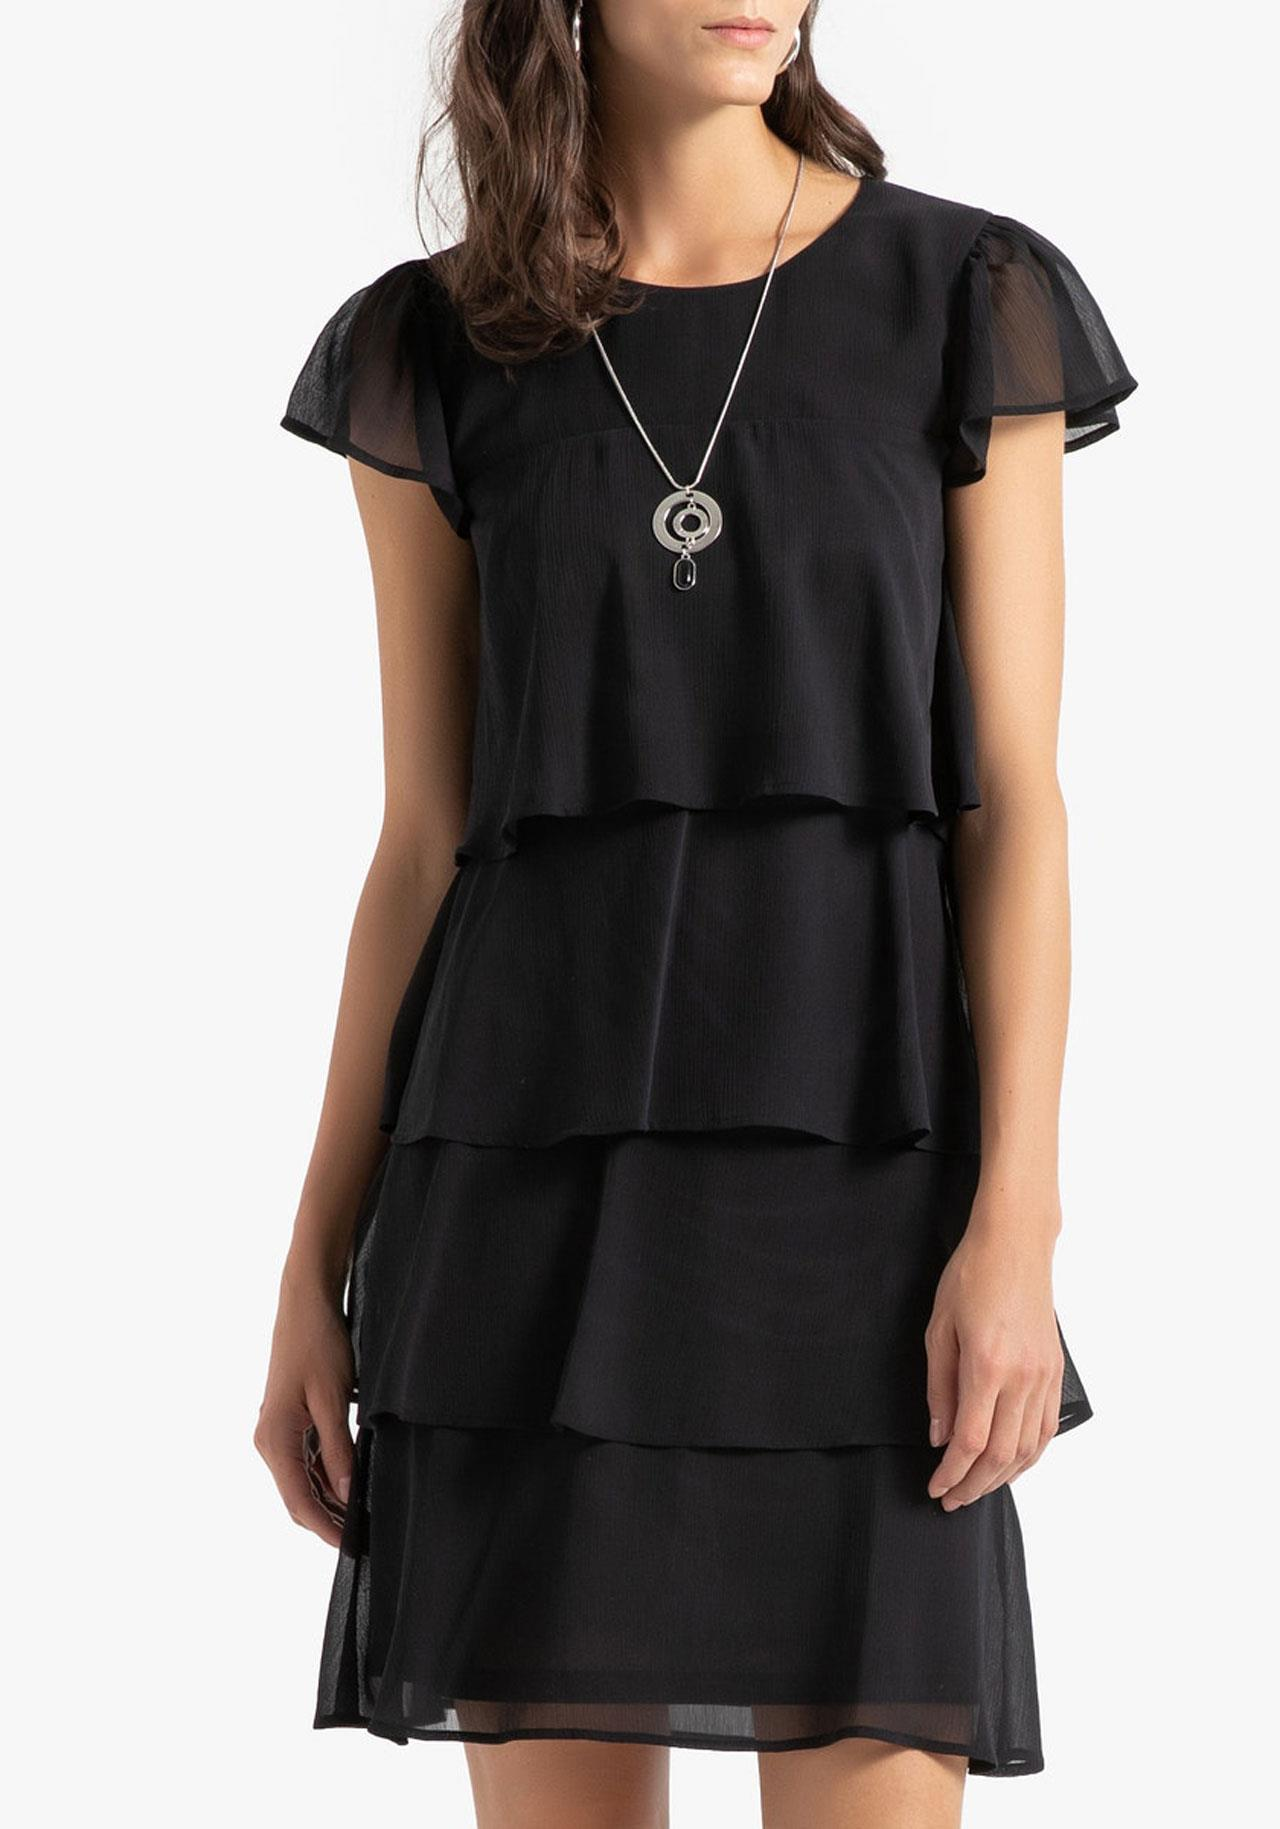 black-friday-la-redoute-vestido-negro